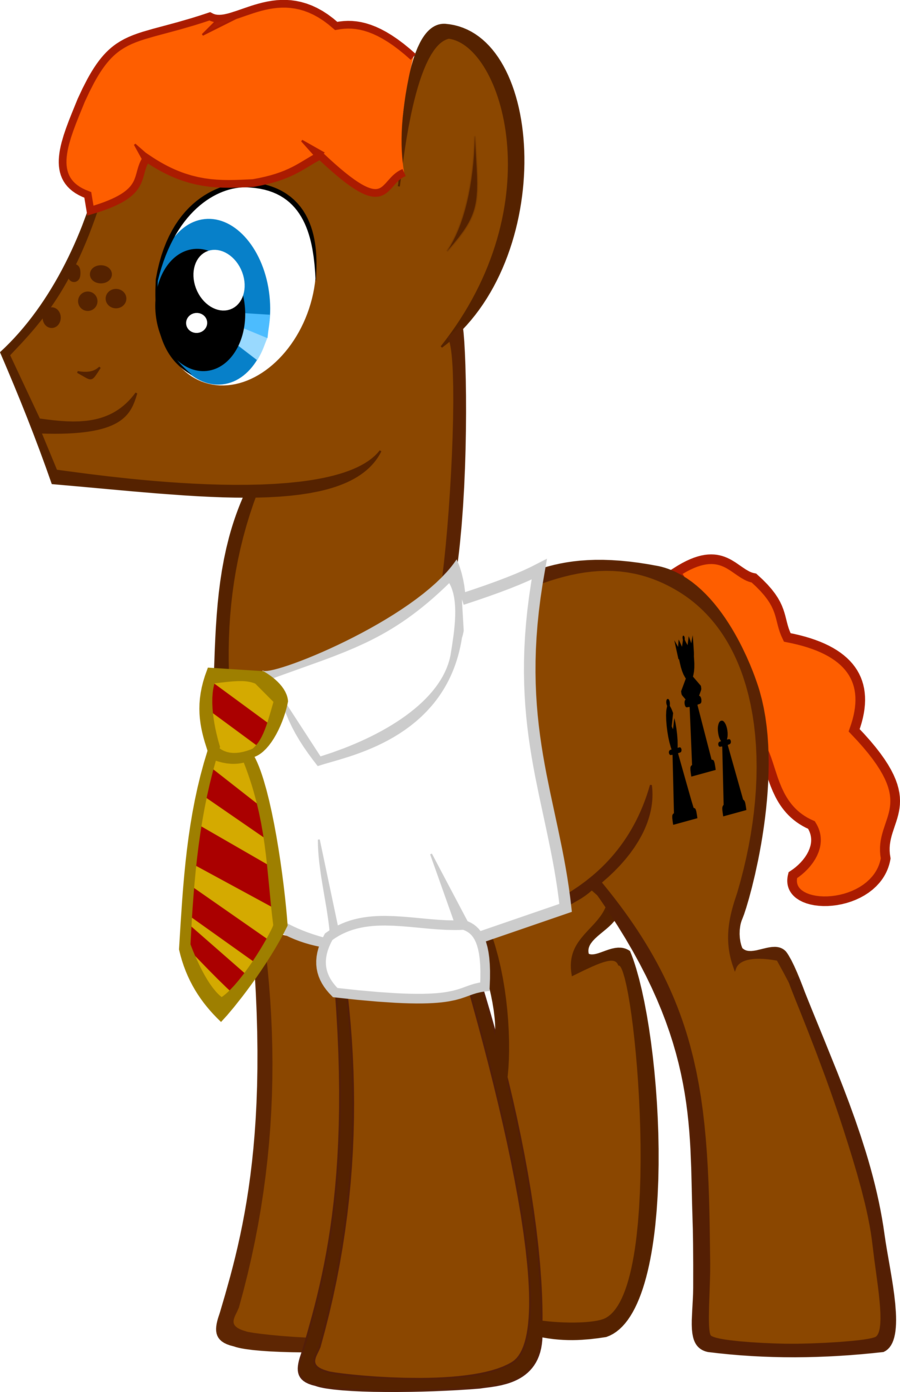 900x1392 Ron Weasley As A Pony By Asdflove